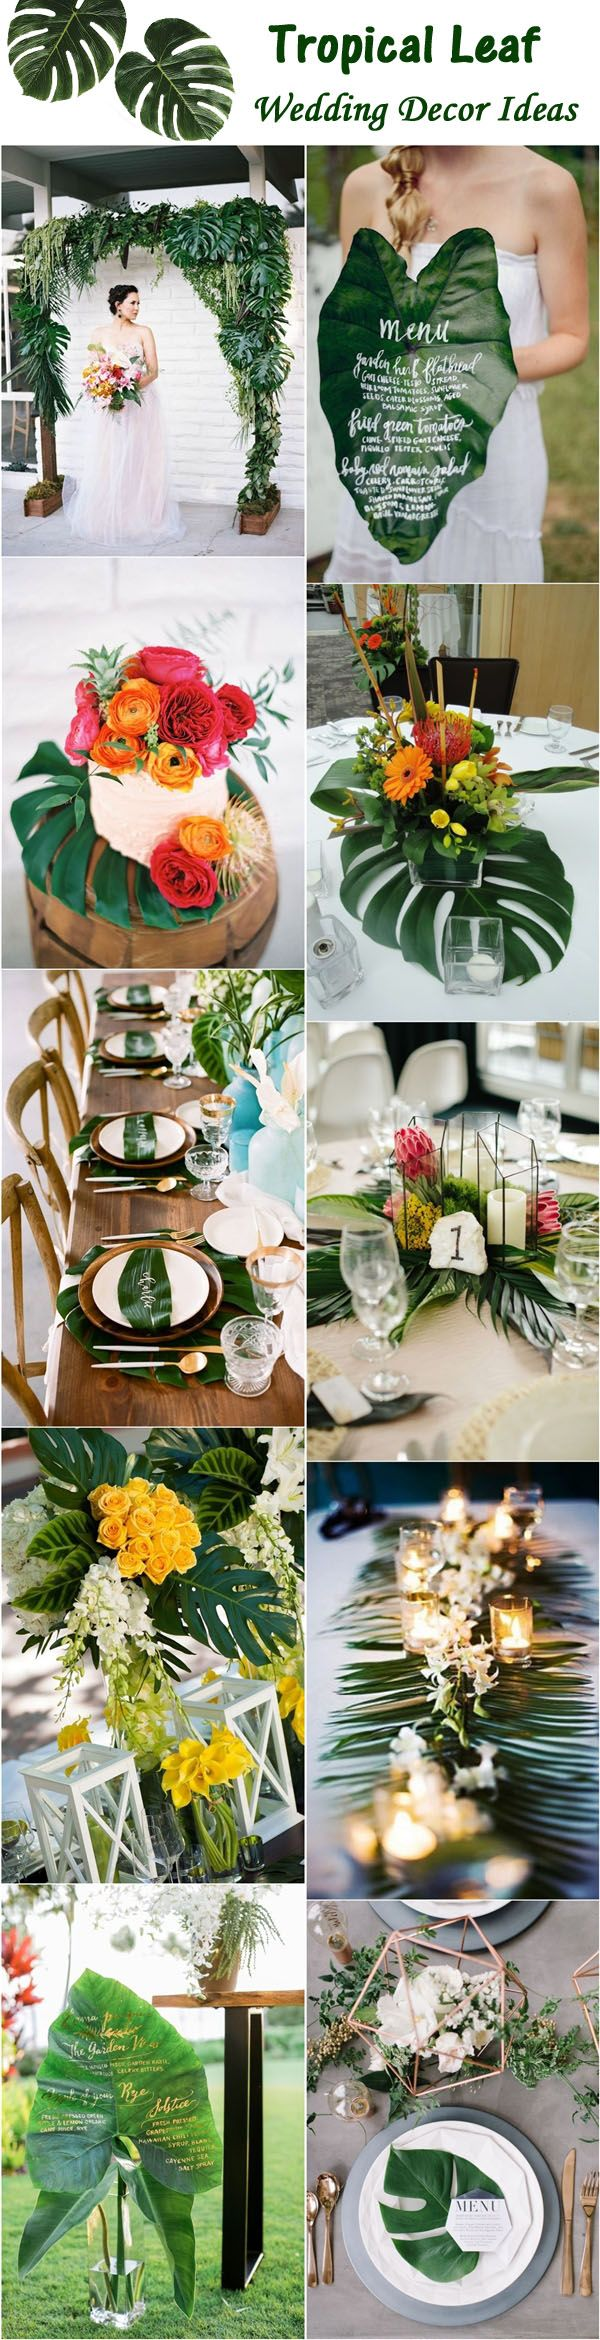 best 25+ tropical wedding decor ideas only on pinterest | garden